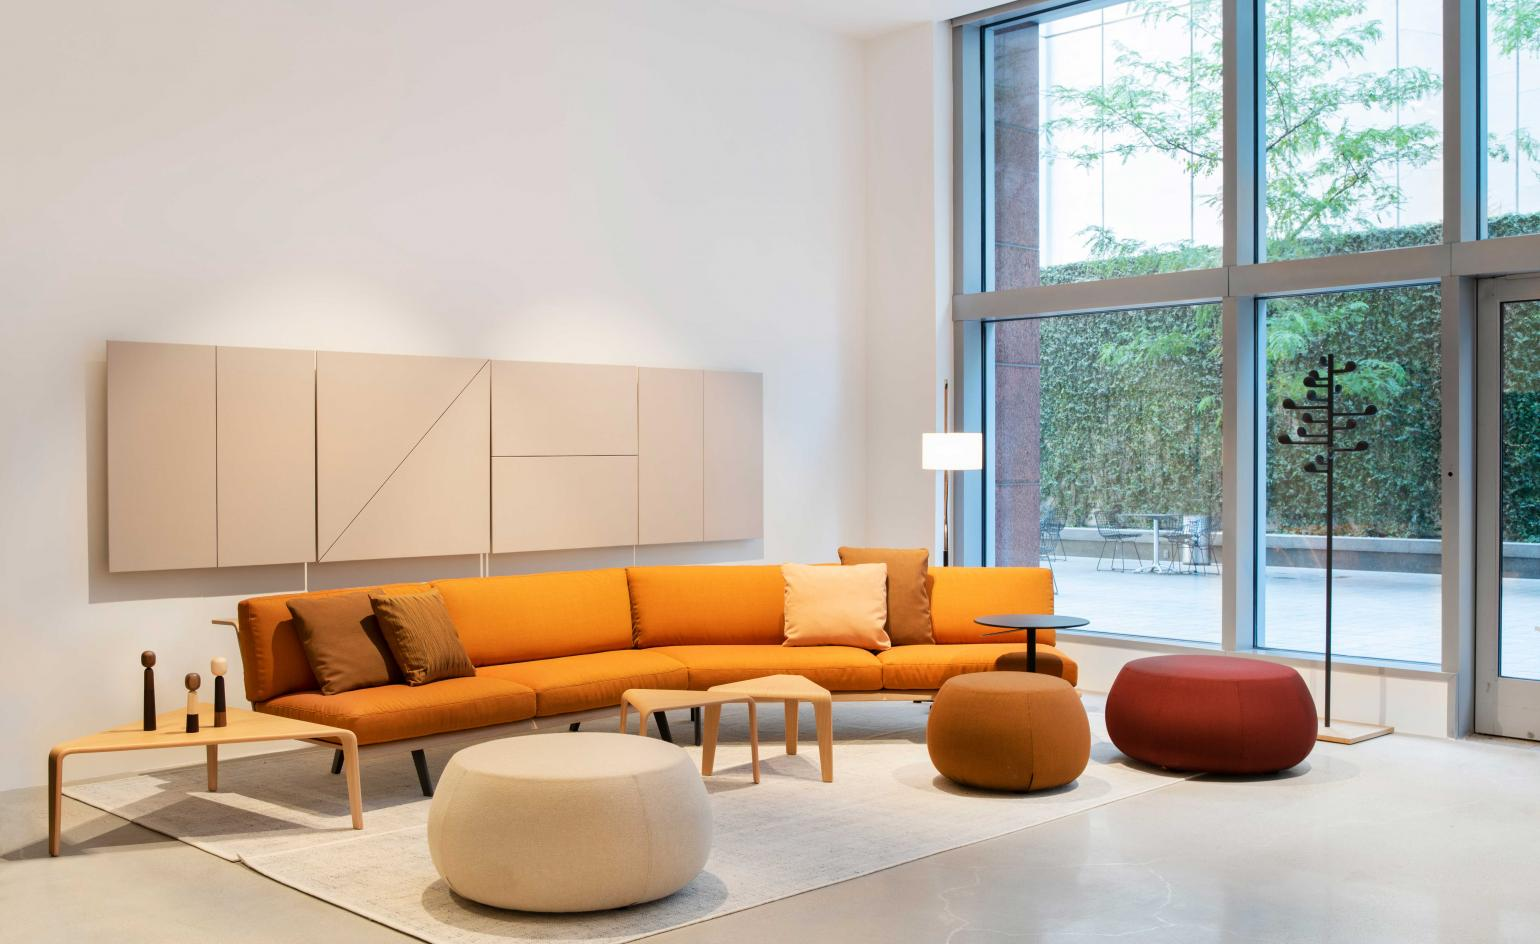 Arper throws colour on Downtown Los Angeles with its first West Coast retail outpost